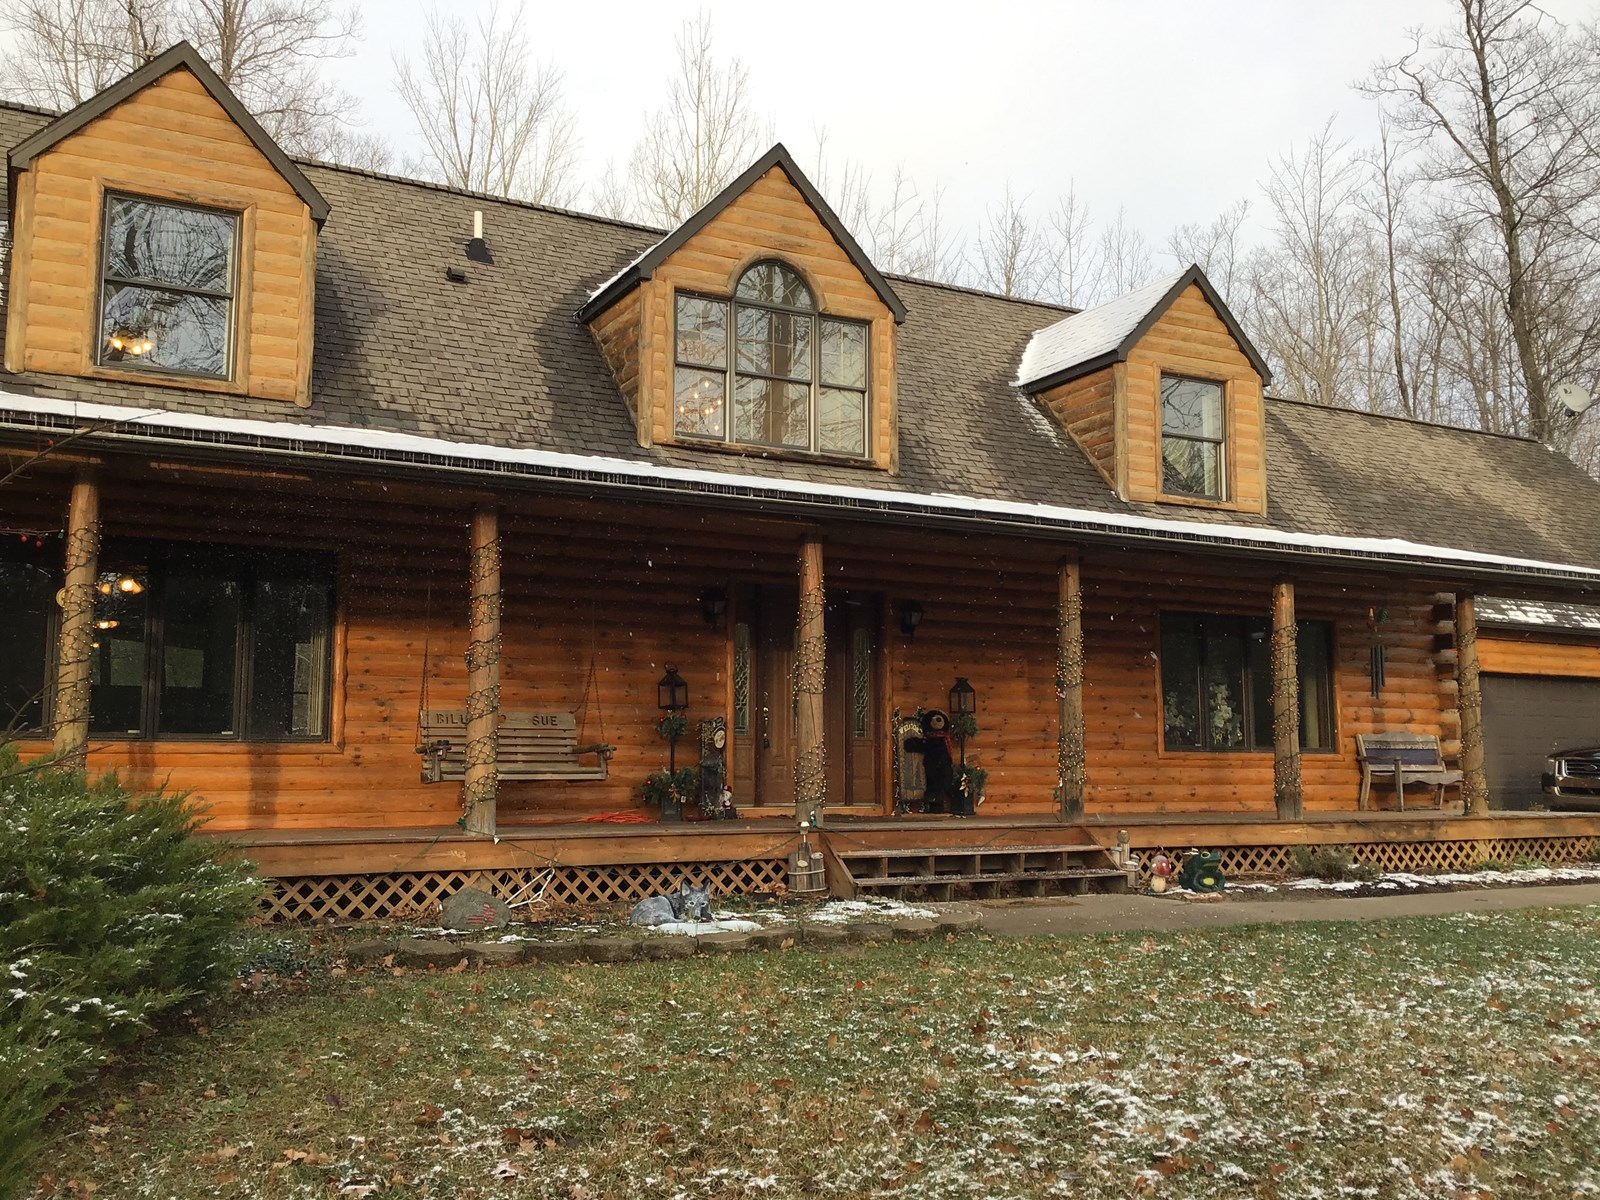 4 BED LOG CABIN ON 14.5 ACRES